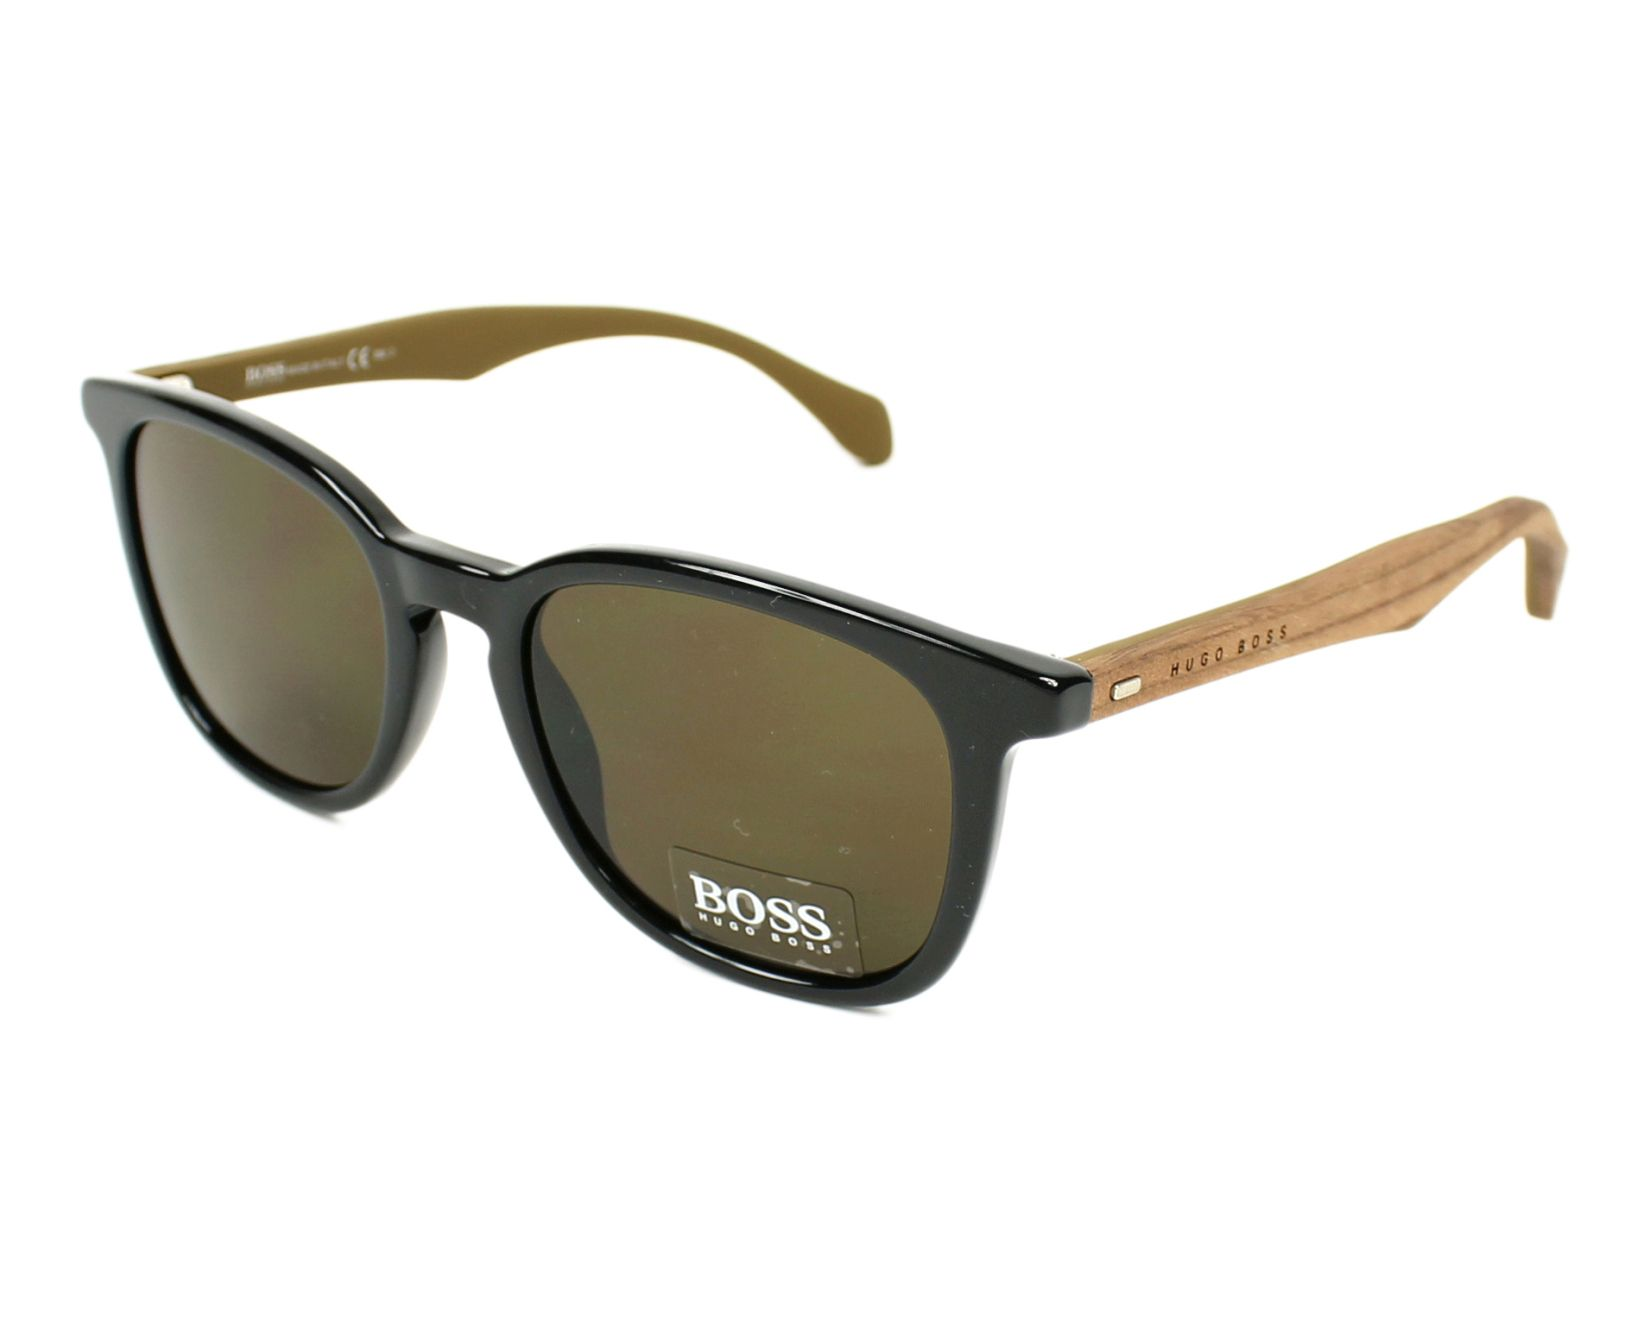 76fb0236018 Hugo Boss - Buy Hugo Boss sunglasses online at low prices